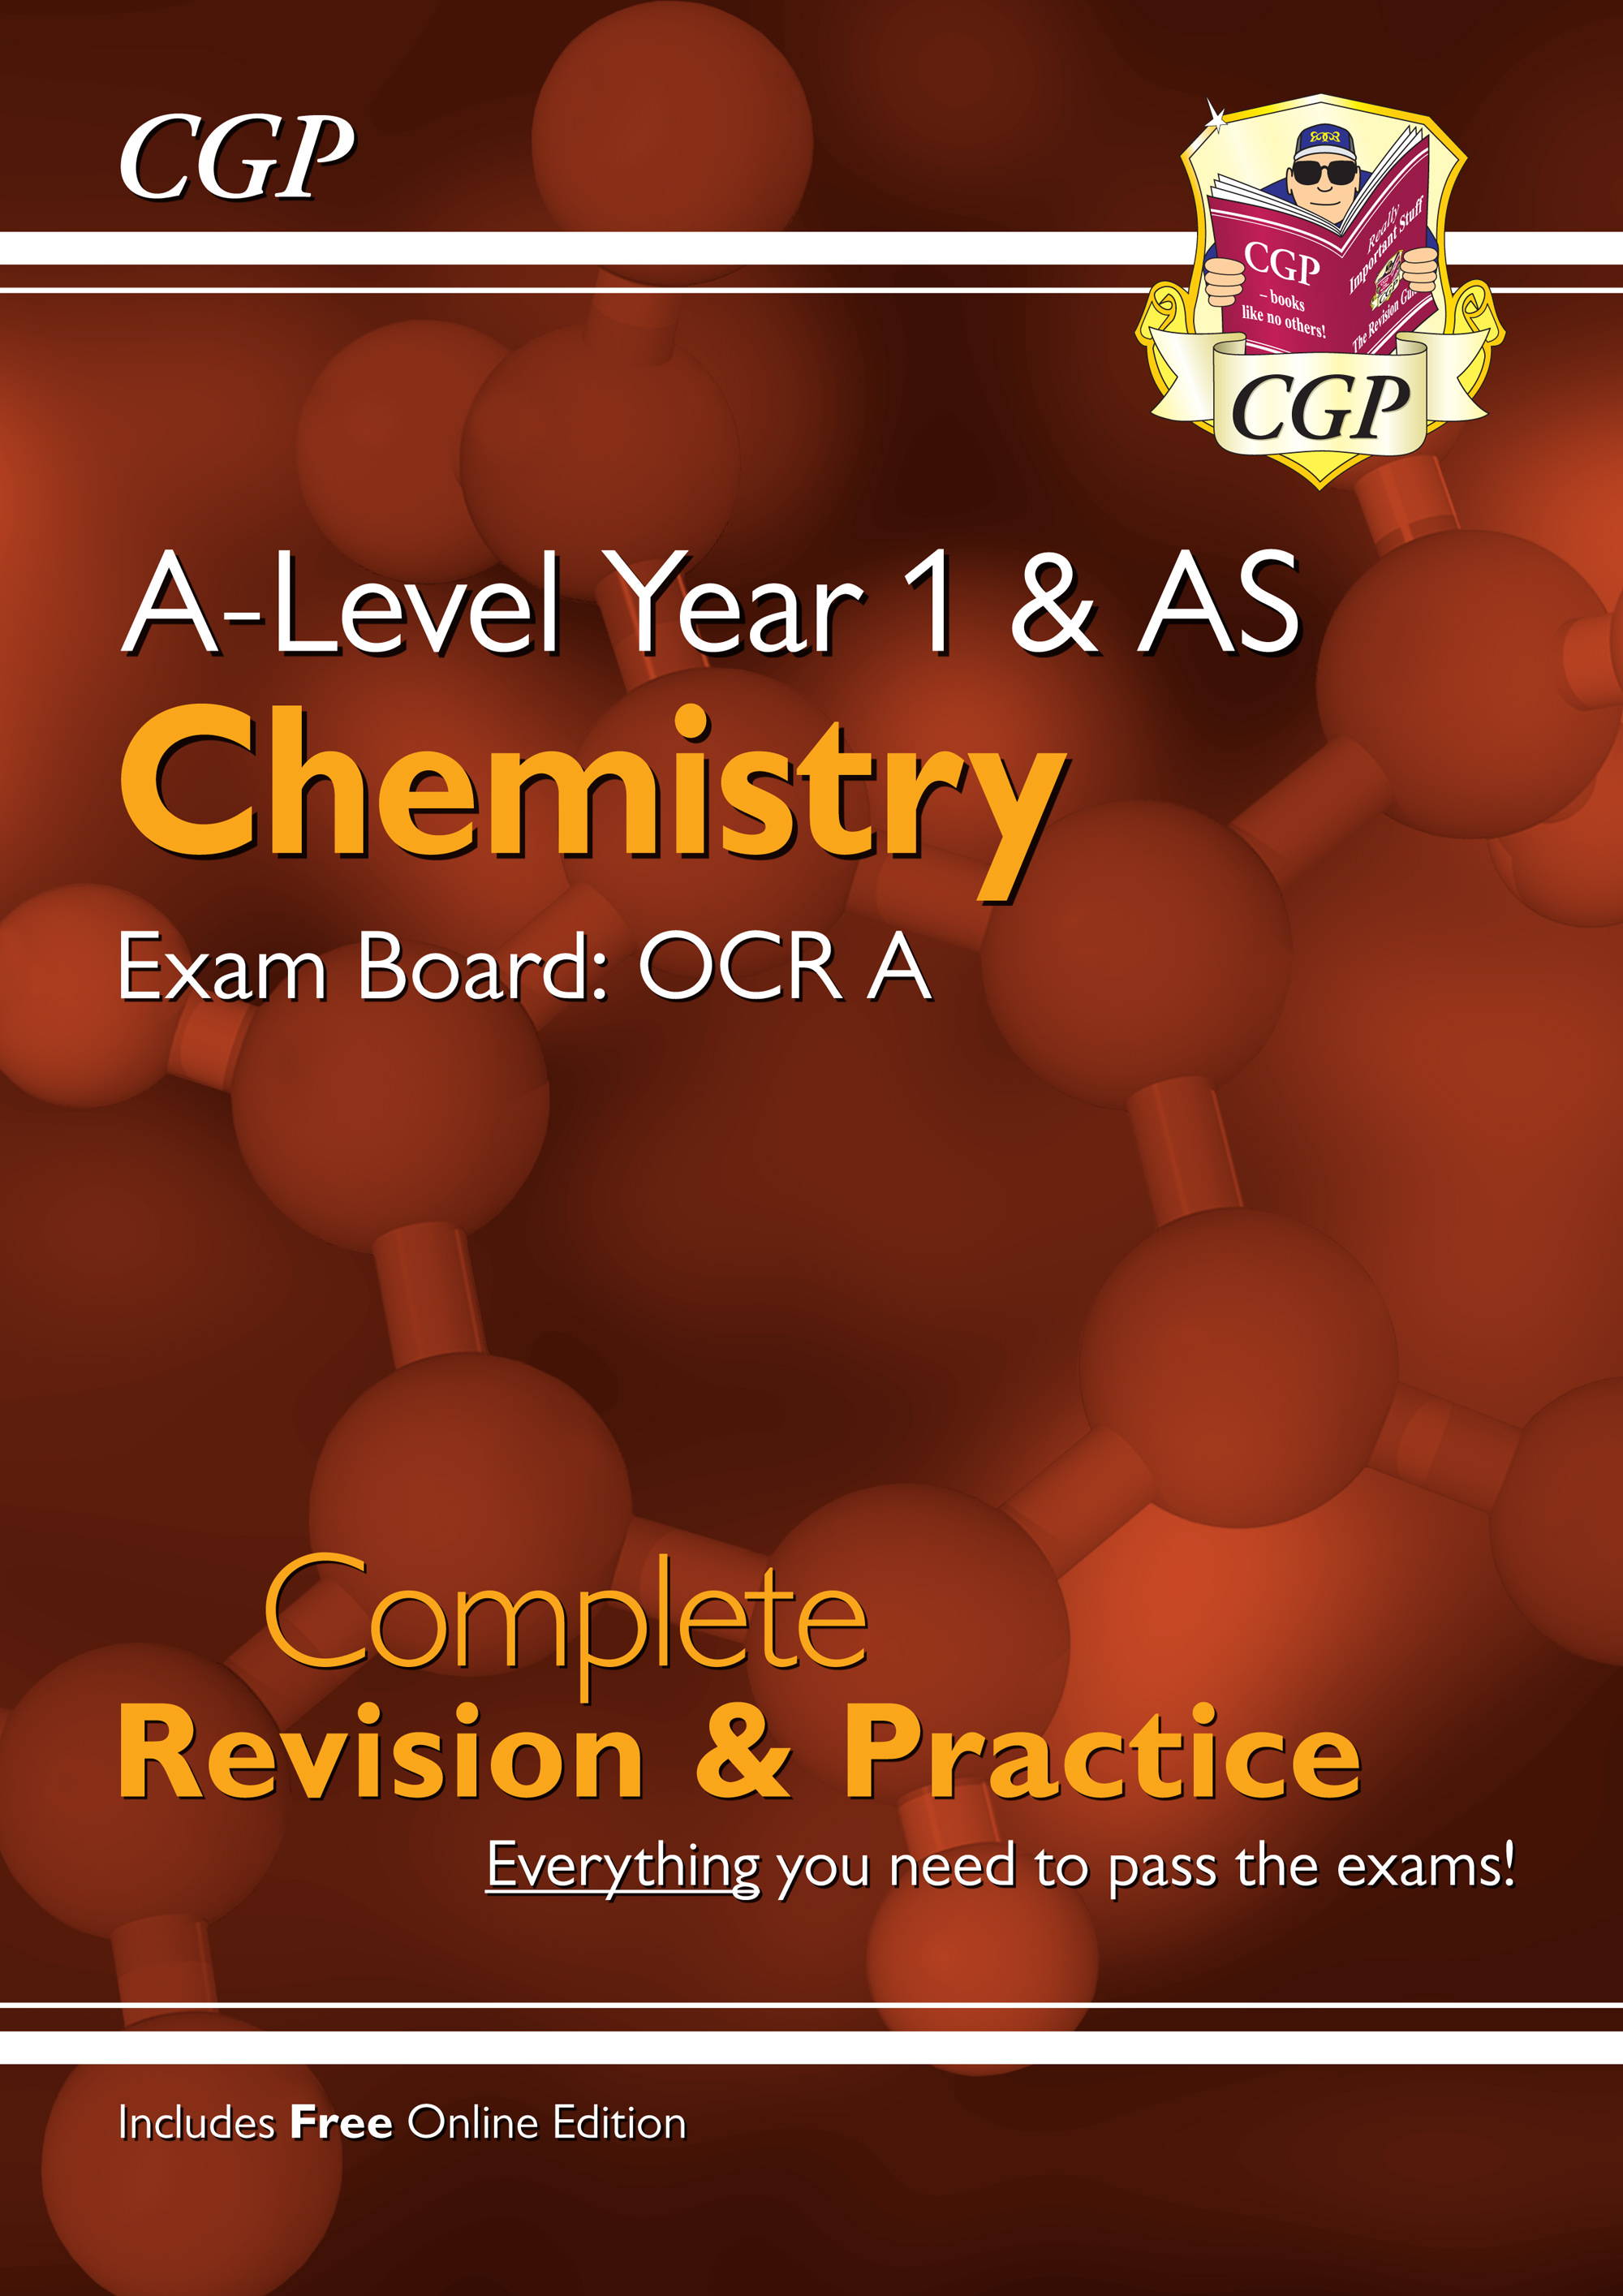 CRAR54 - A-Level Chemistry: OCR A Year 1 & AS Complete Revision & Practice with Online Edition